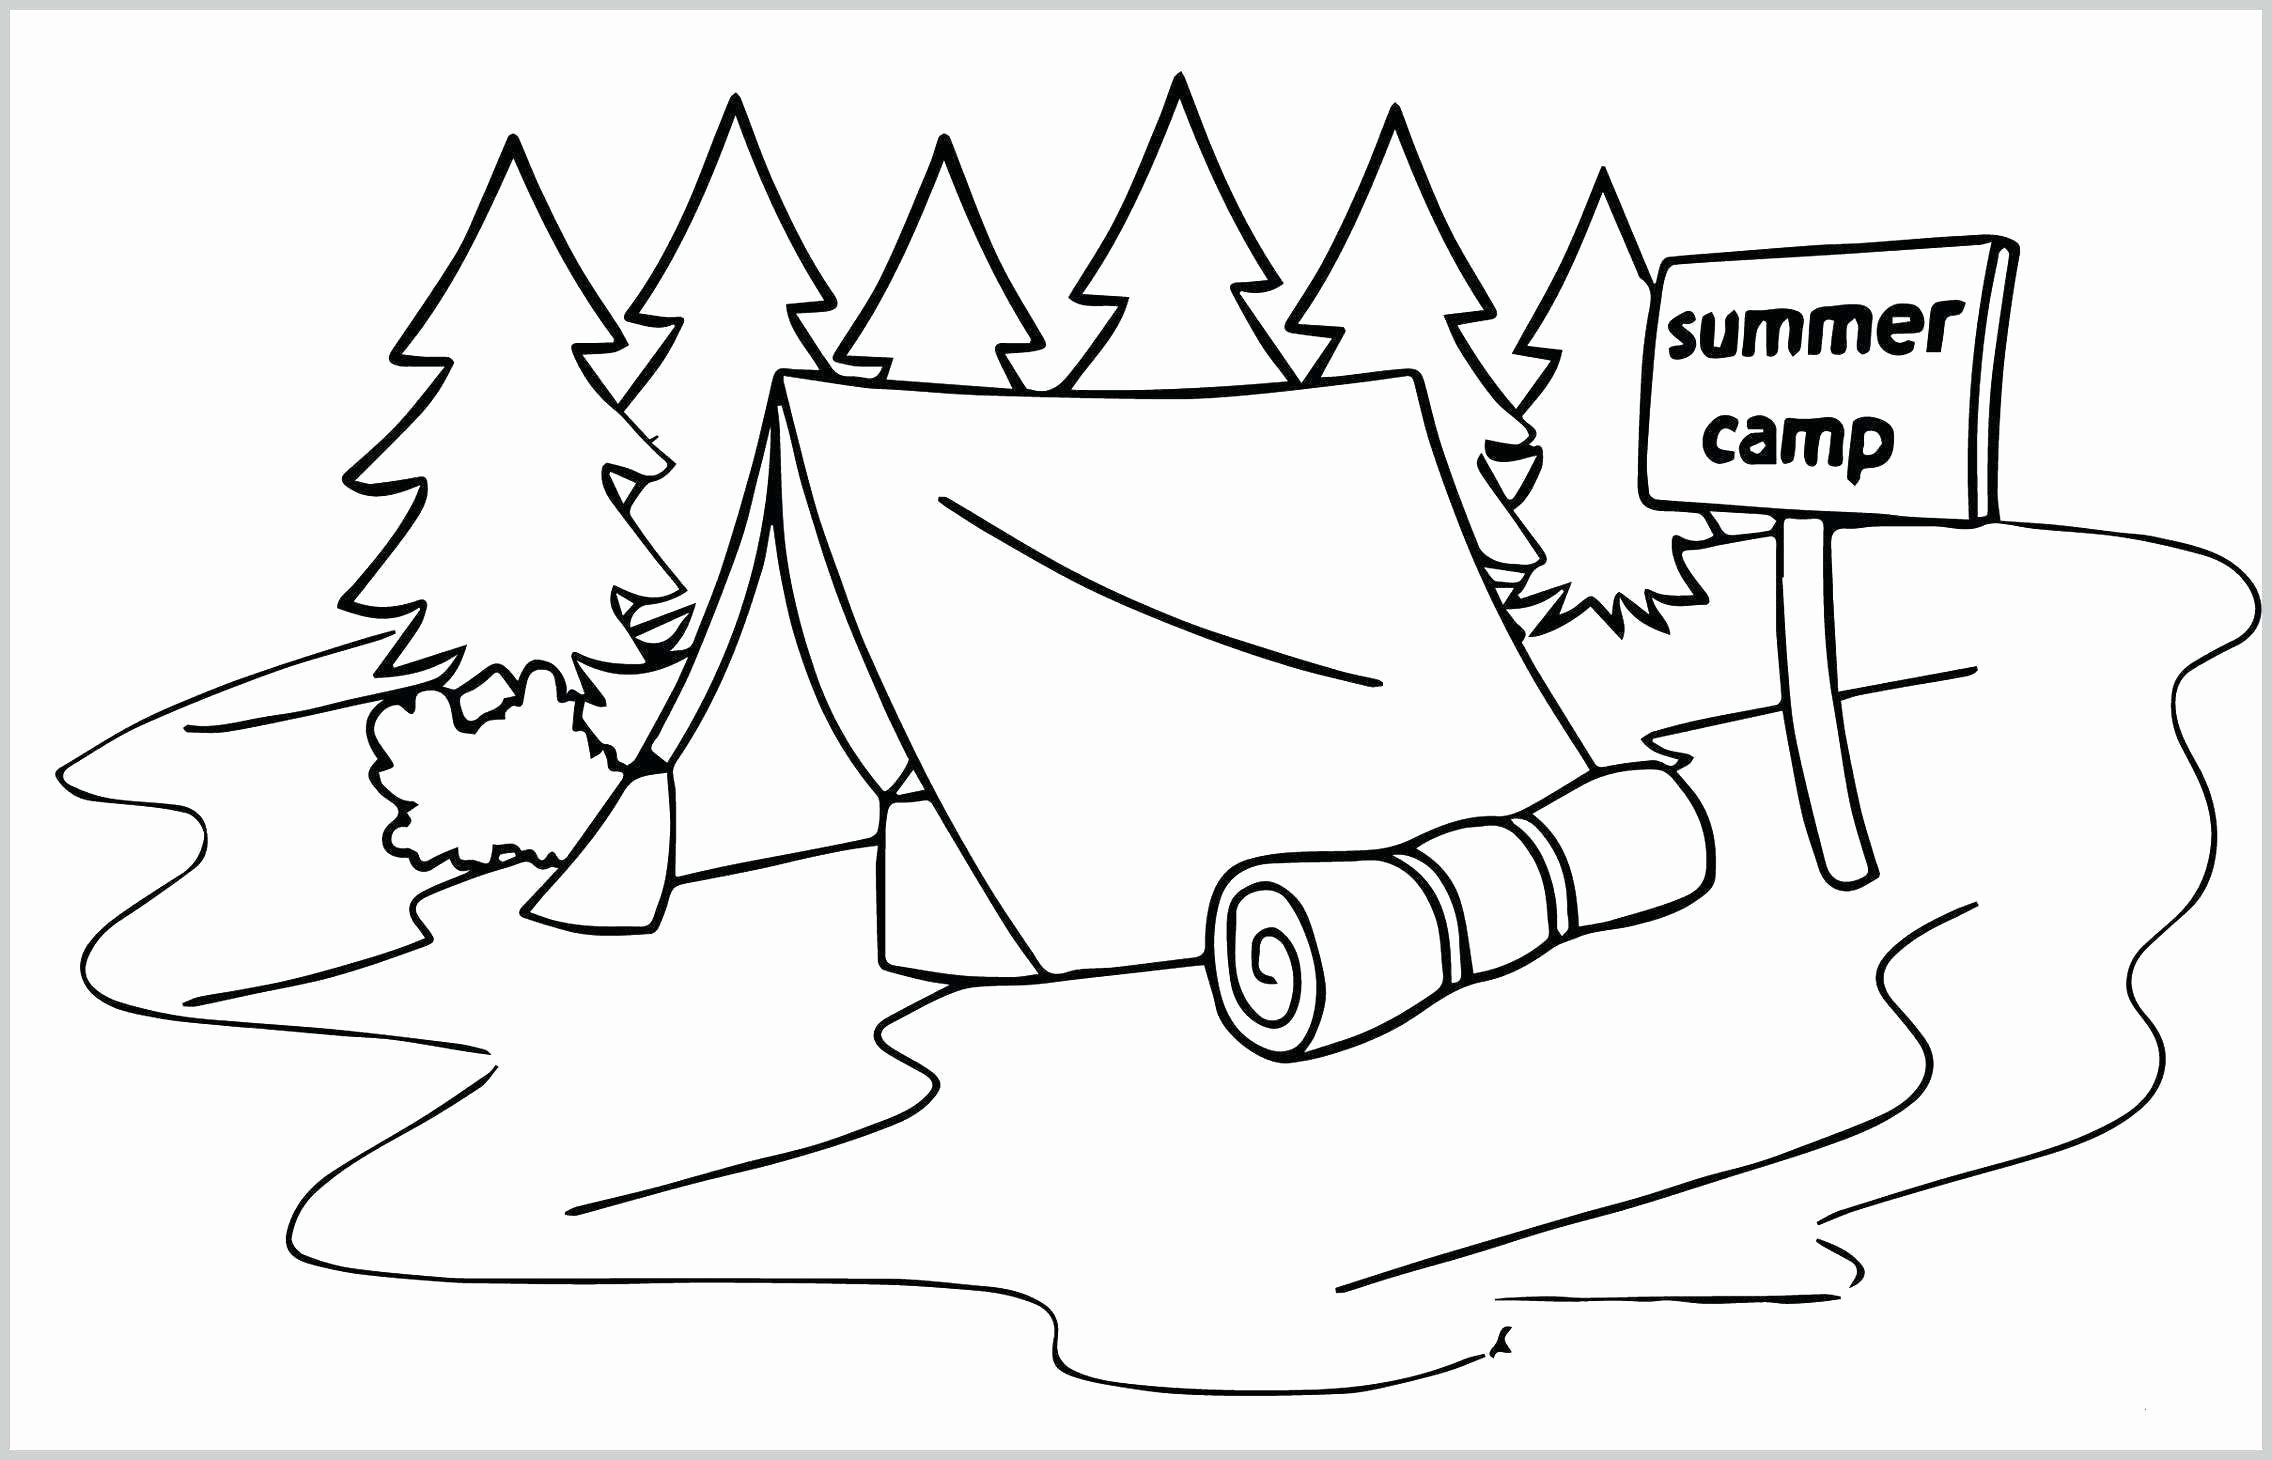 Summer Camp Coloring Pages Beautiful Monthly Archives August 2019 Math Worksheets Grade 4 Ba In 2020 Camping Coloring Pages Summer Coloring Pages Family Coloring Pages